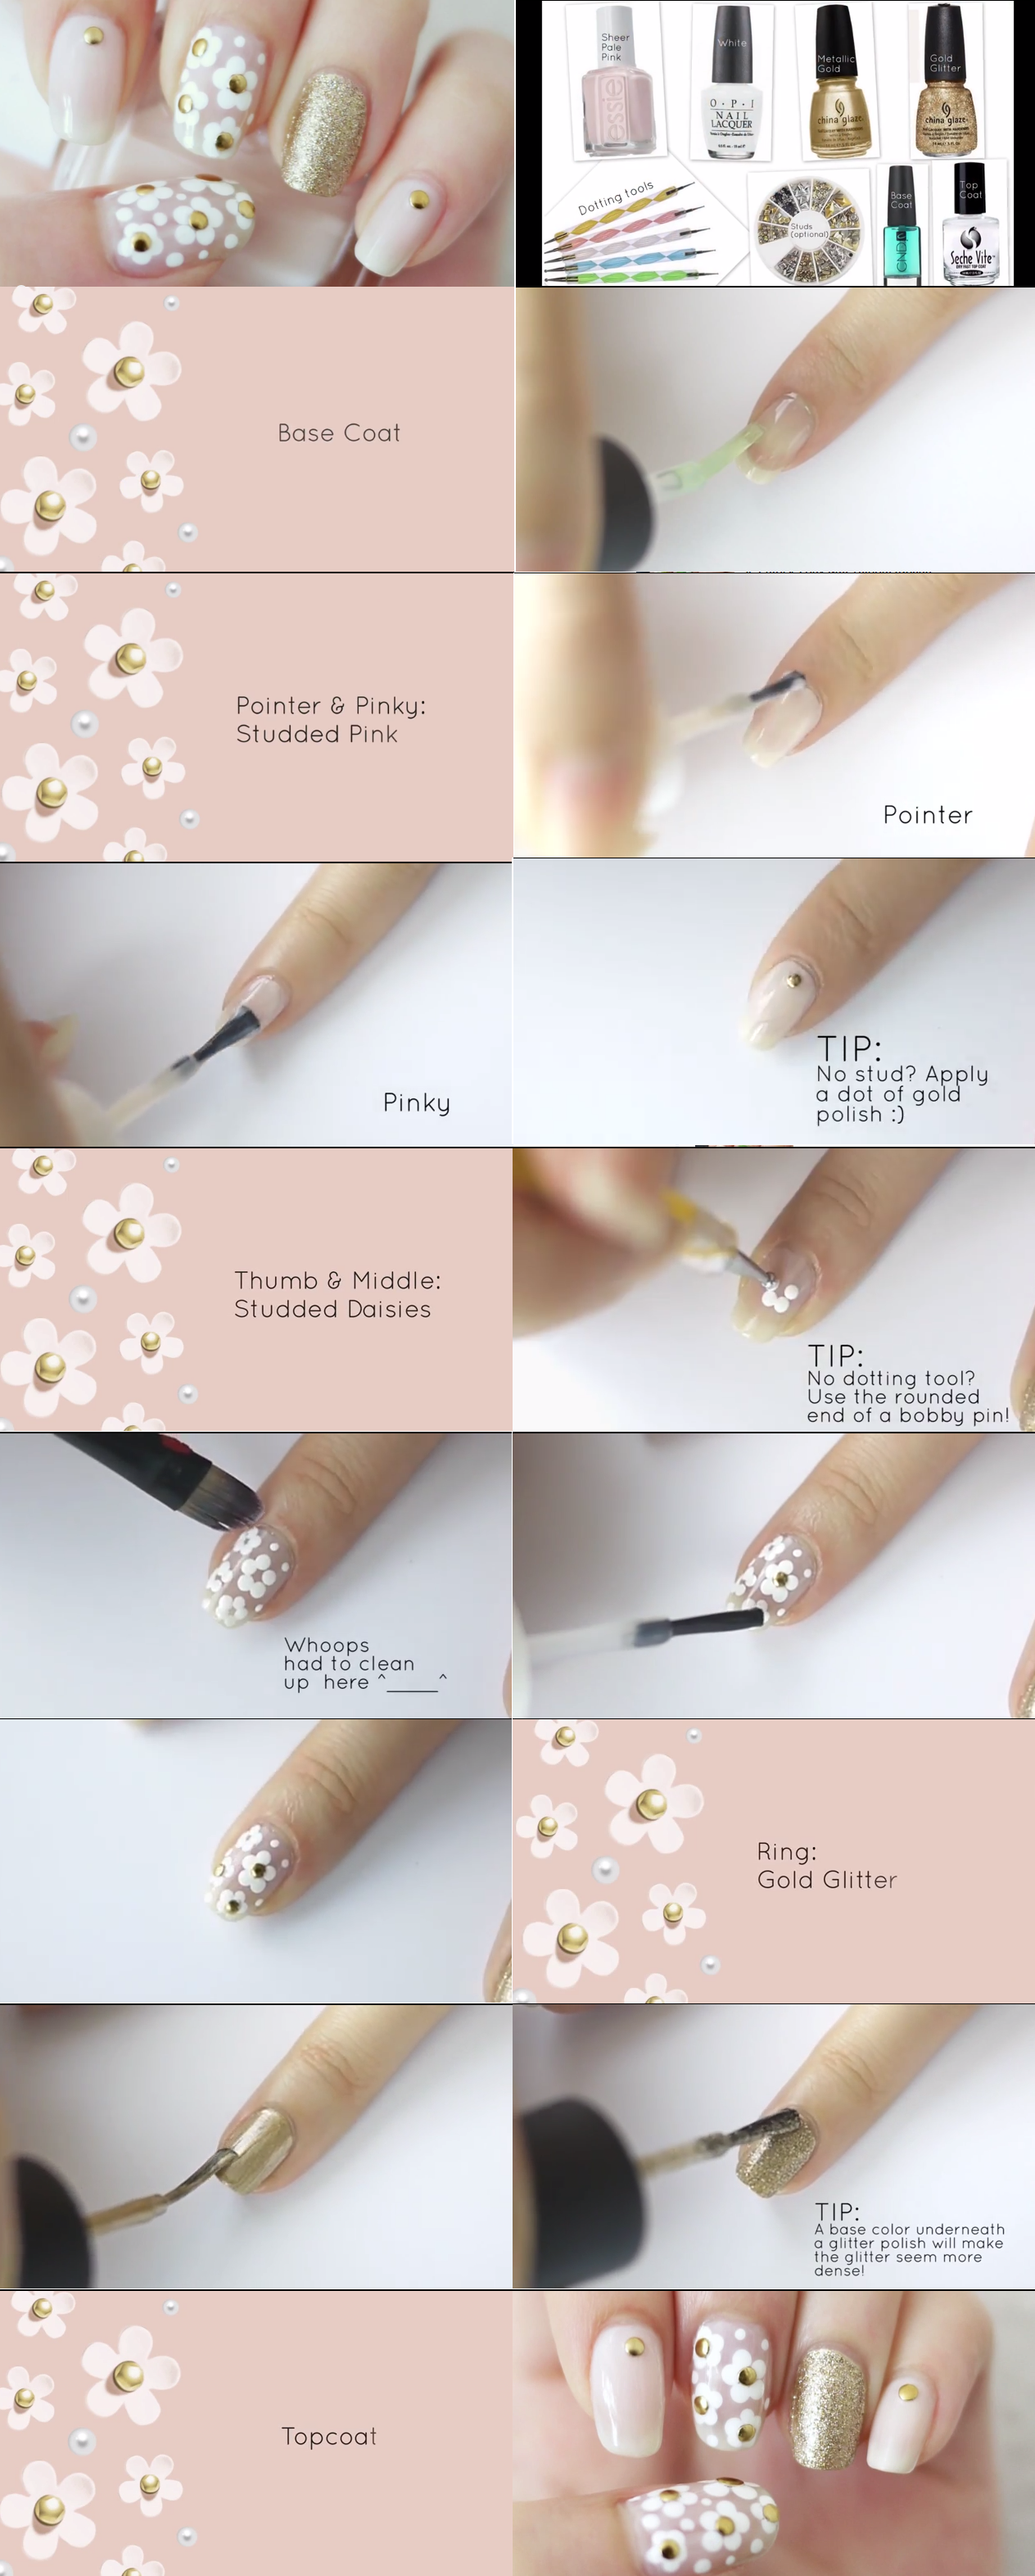 Pin by Nathalie Torres on nails | Pinterest | Tutorials, Clothing ...